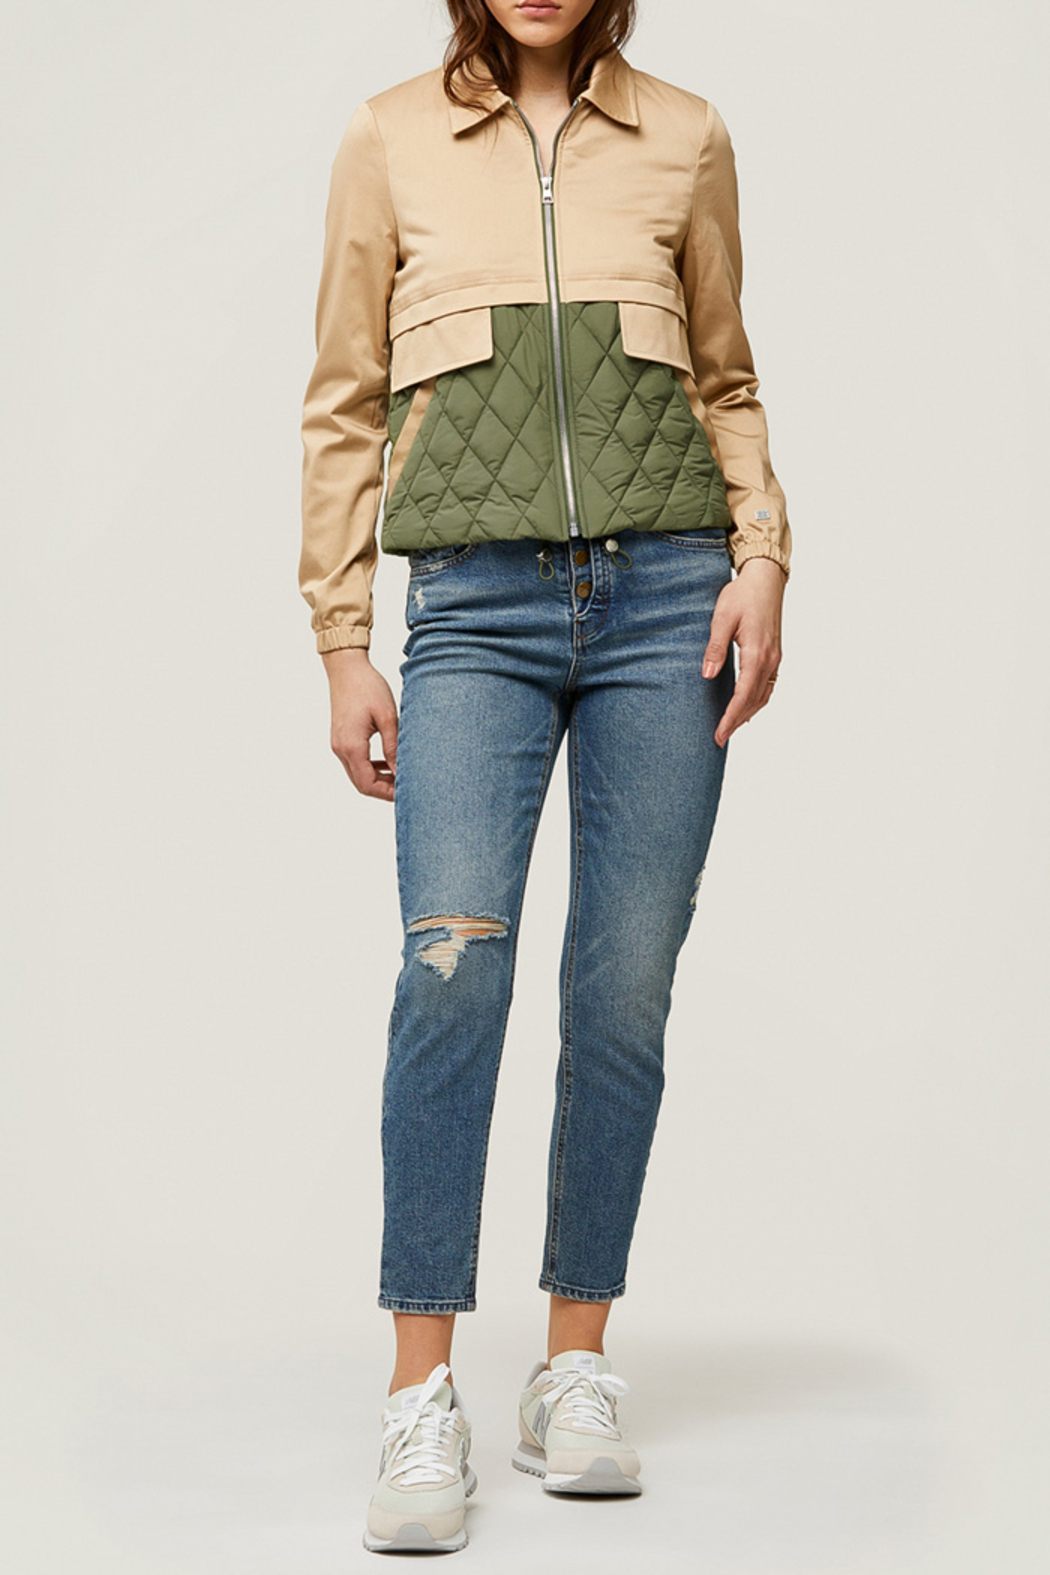 Soia & Kyo Mixed Media Water-Repellent Jacket - Side Cropped Image